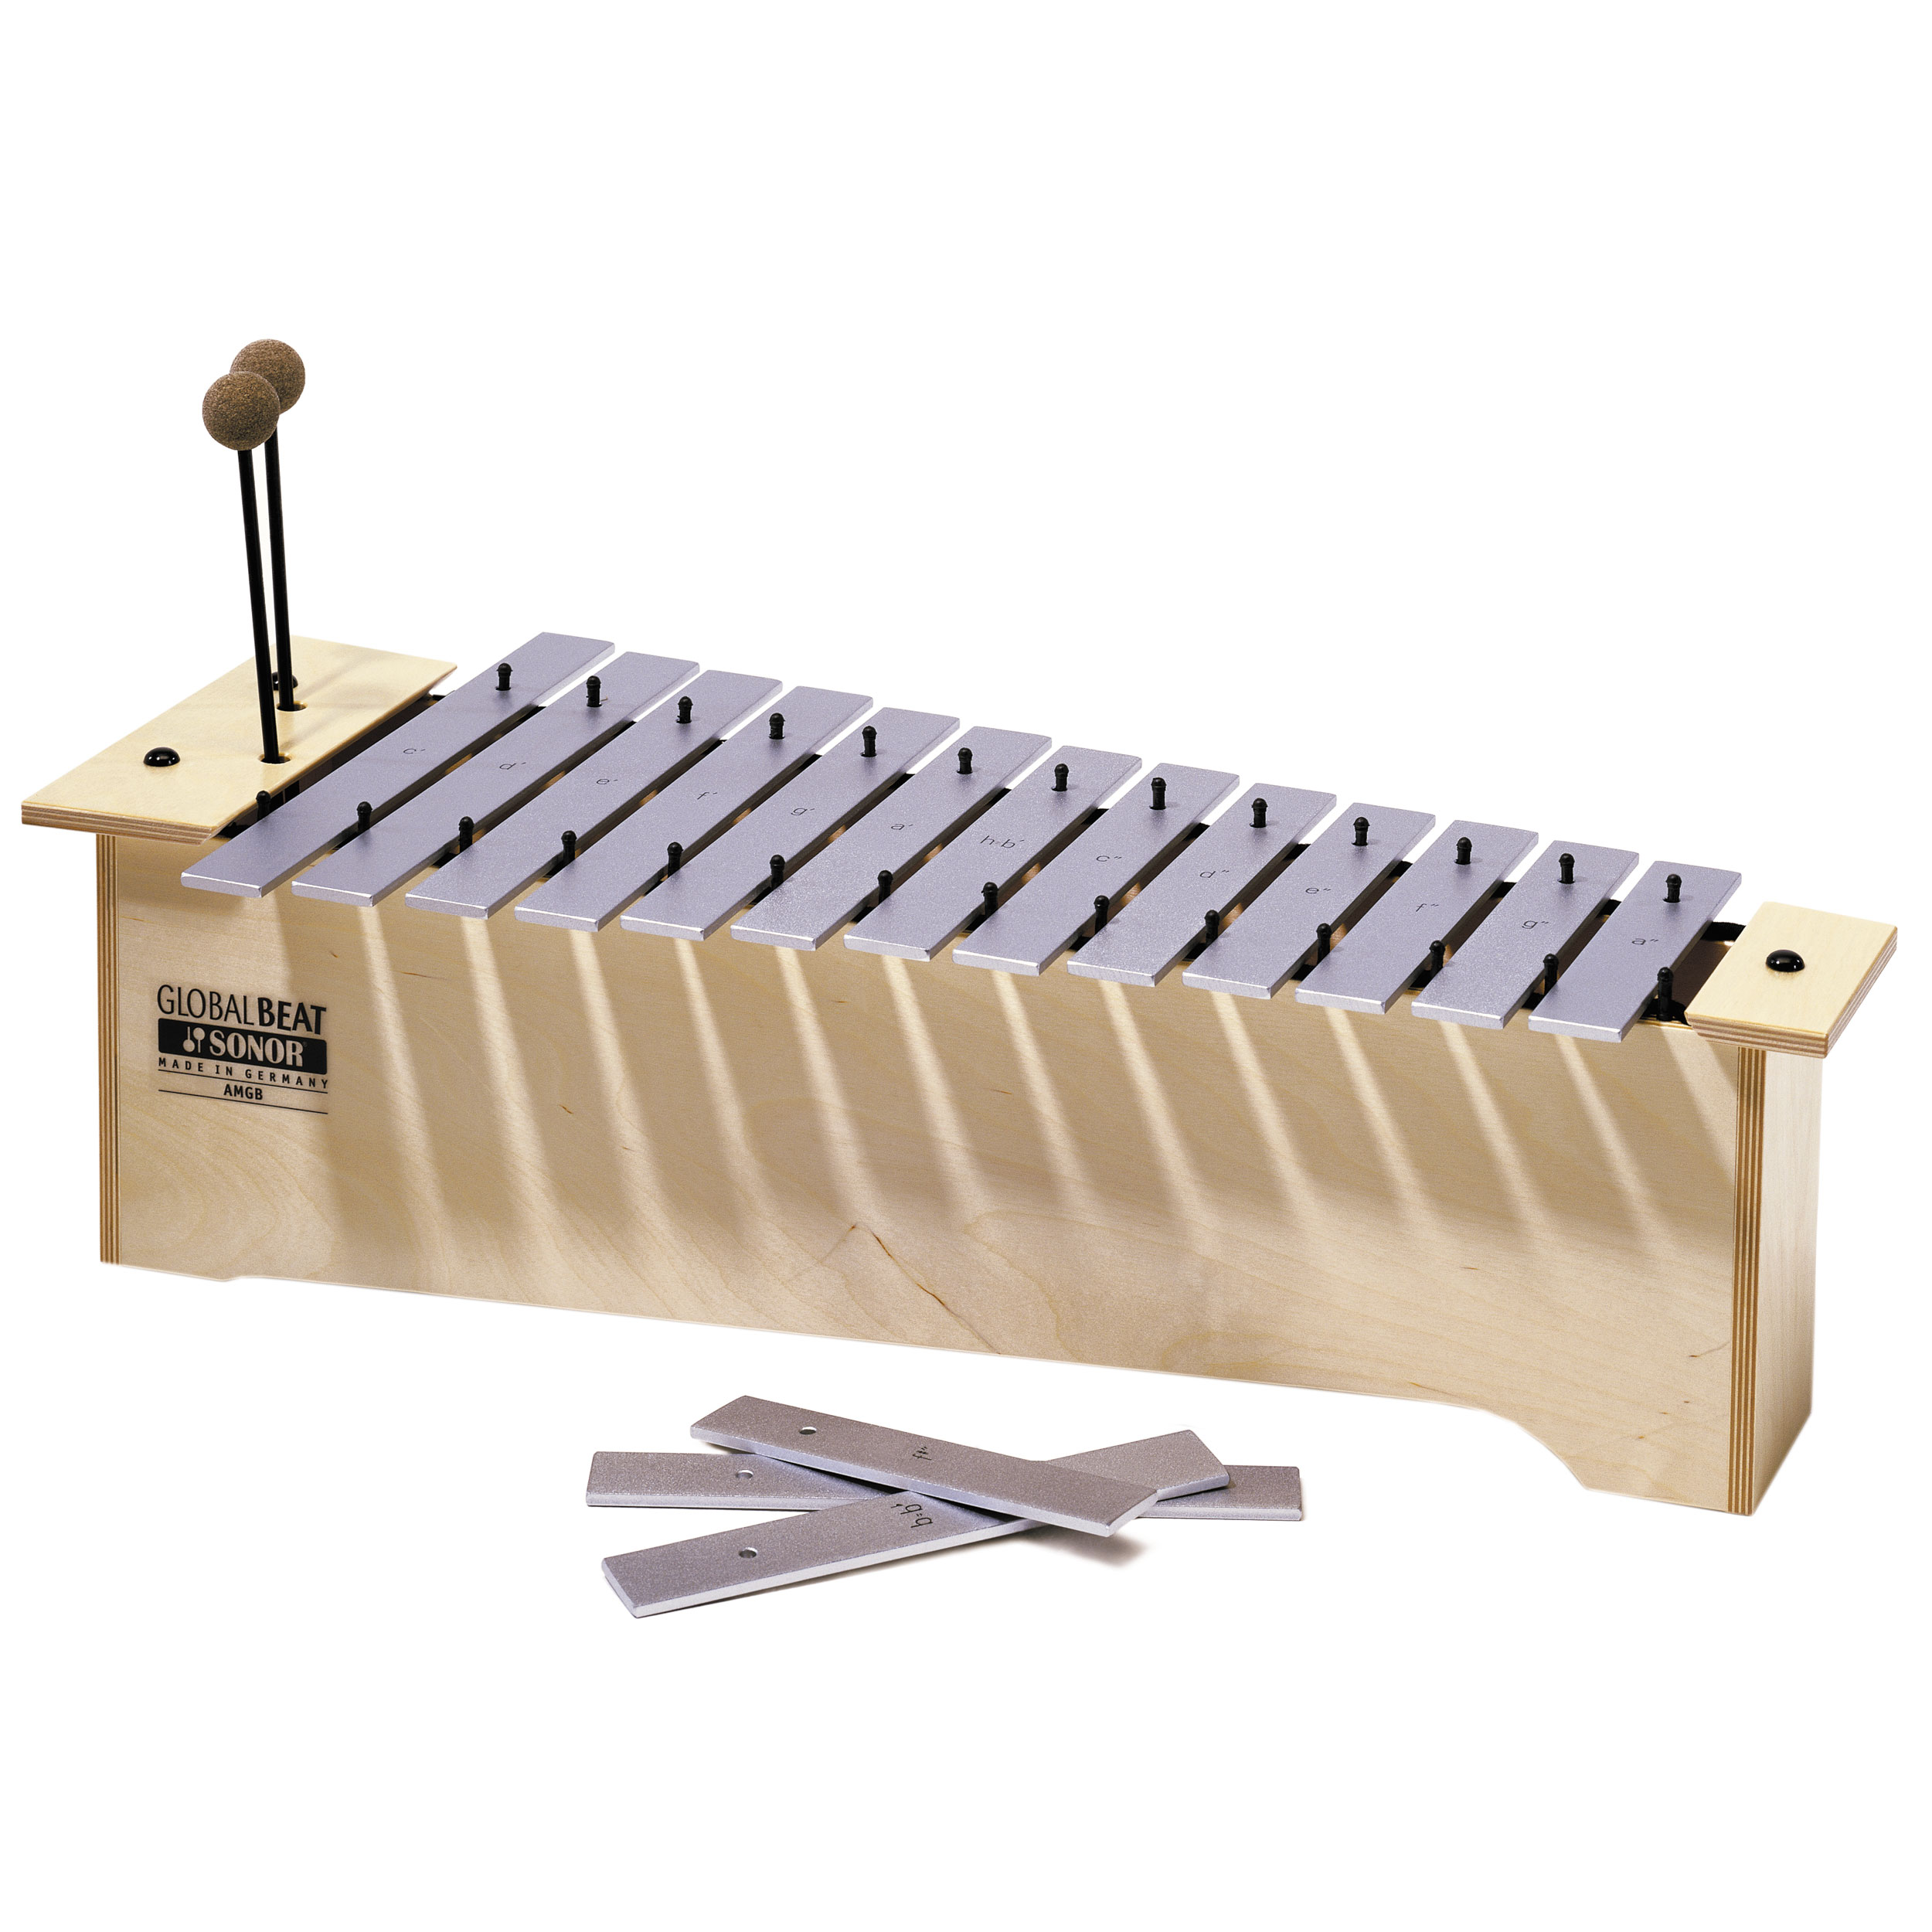 Sonor Orff Global Beat Bass Diatonic Metallophone